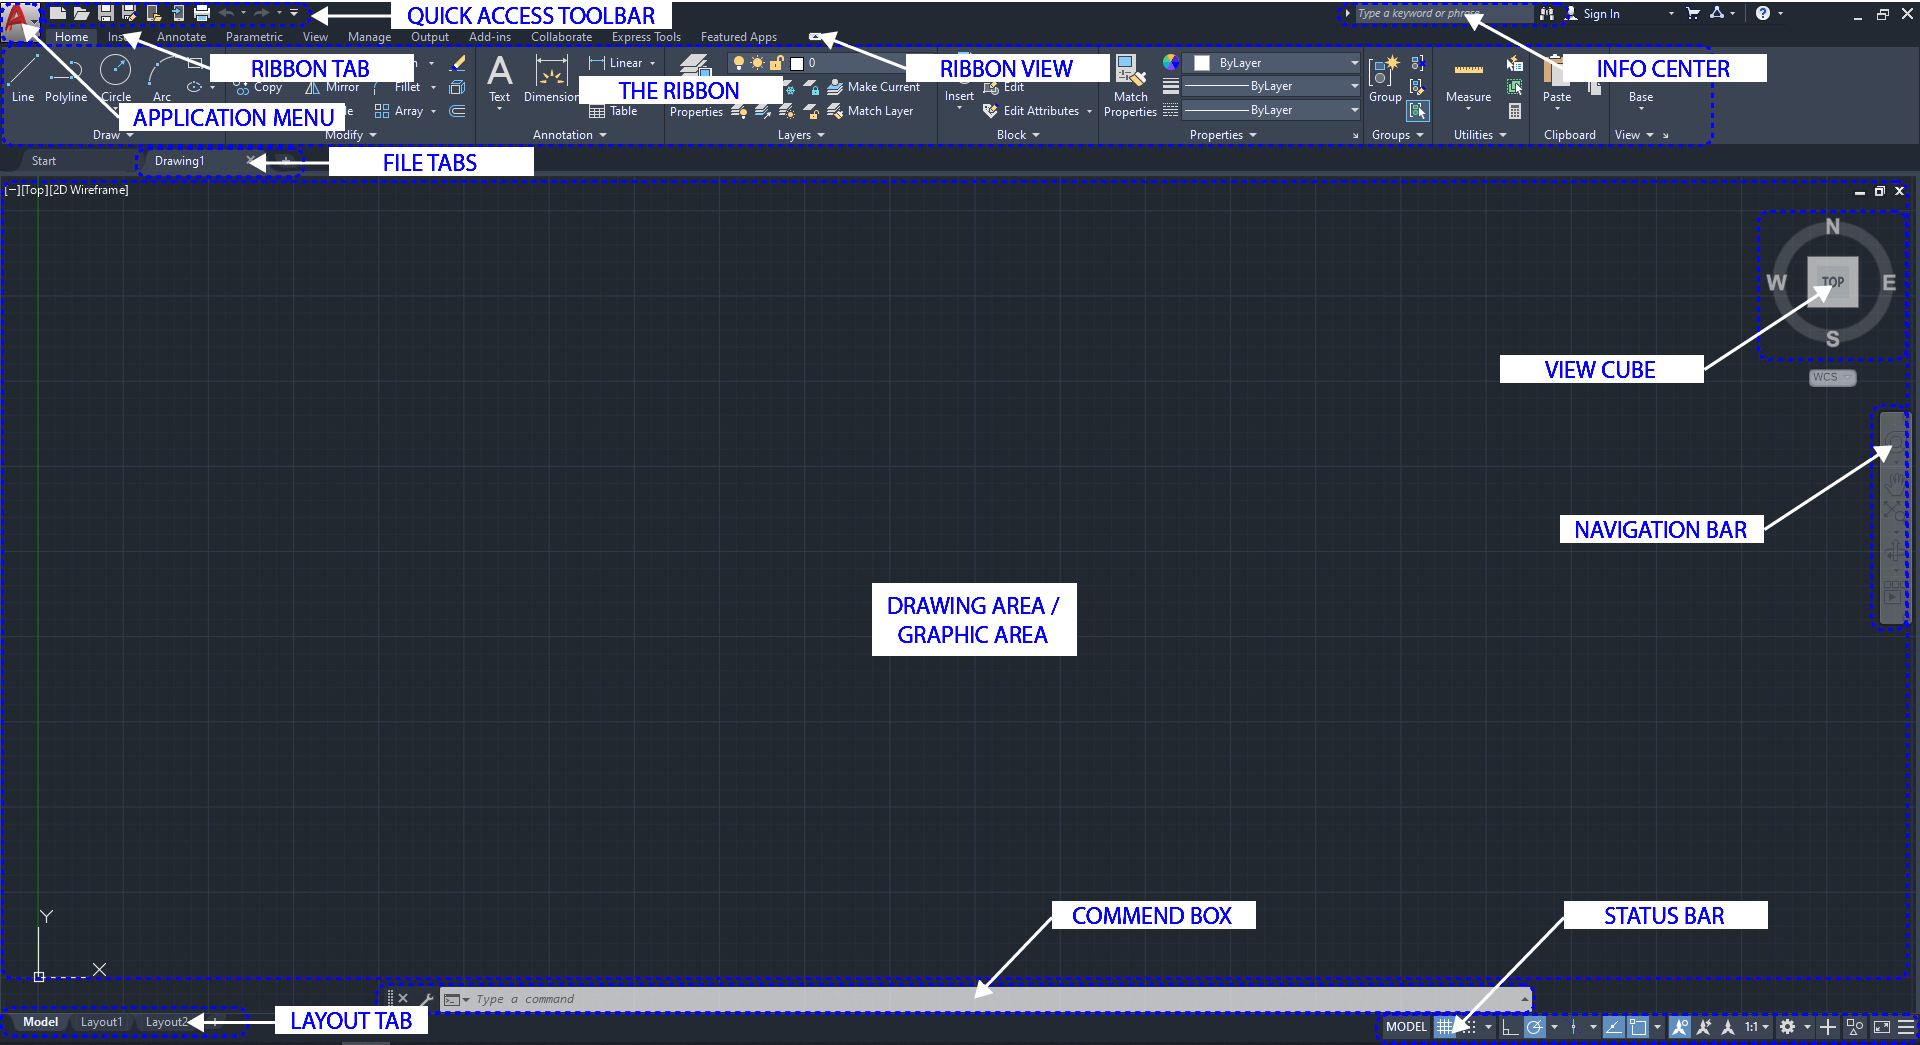 AutoCAD user interface - It indicates what is the name of each part of the interface.